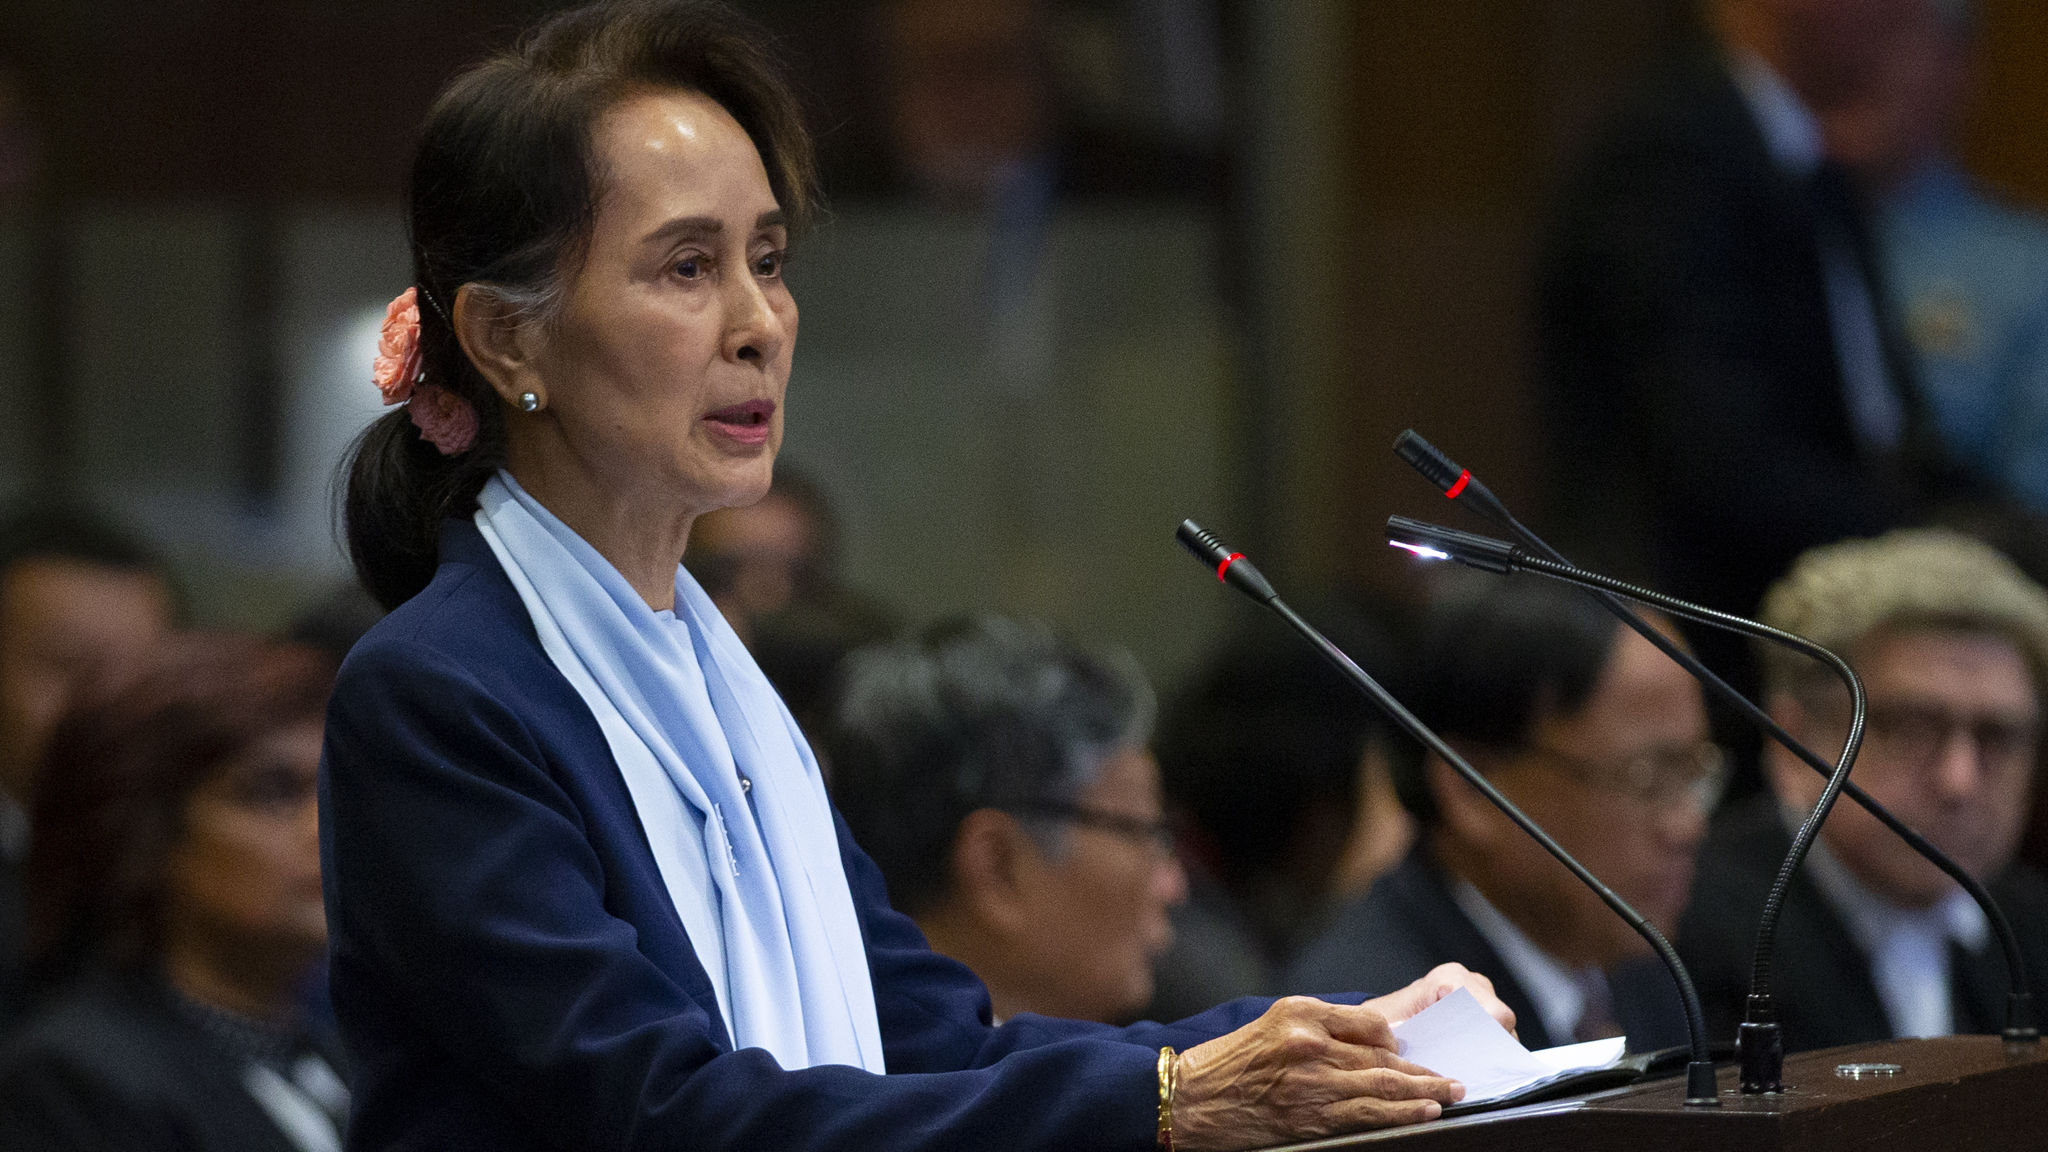 Genocide defence seals Aung San Suu Kyi's international alienation